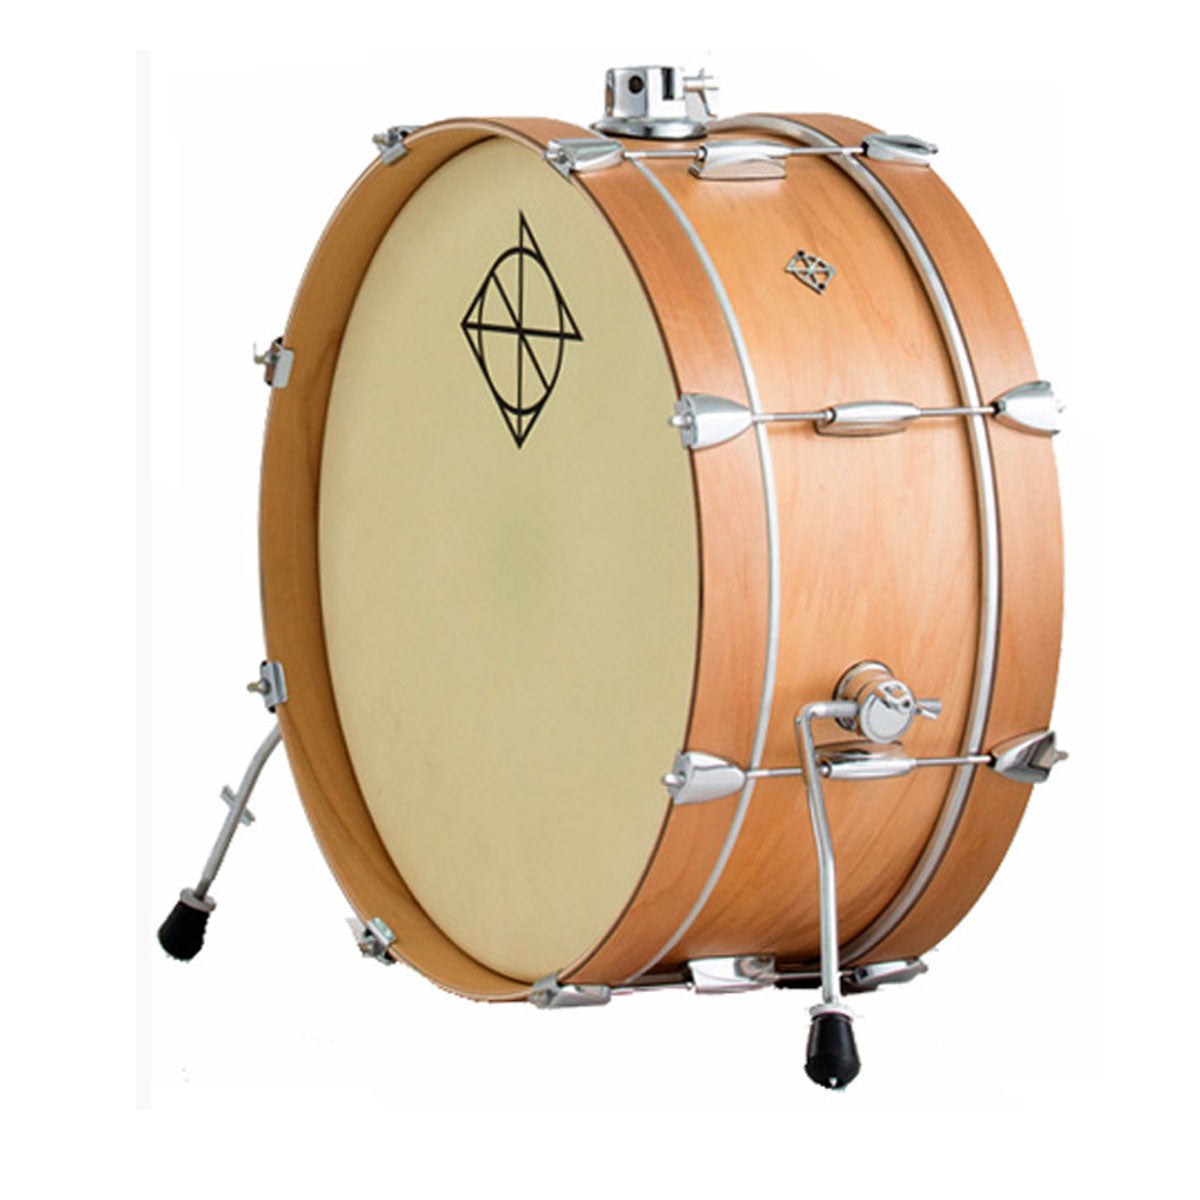 Dixon Little Roomer Series Bass Drum Satin Natural Lacquer Finish - 7x20inch - PDZL0720SN